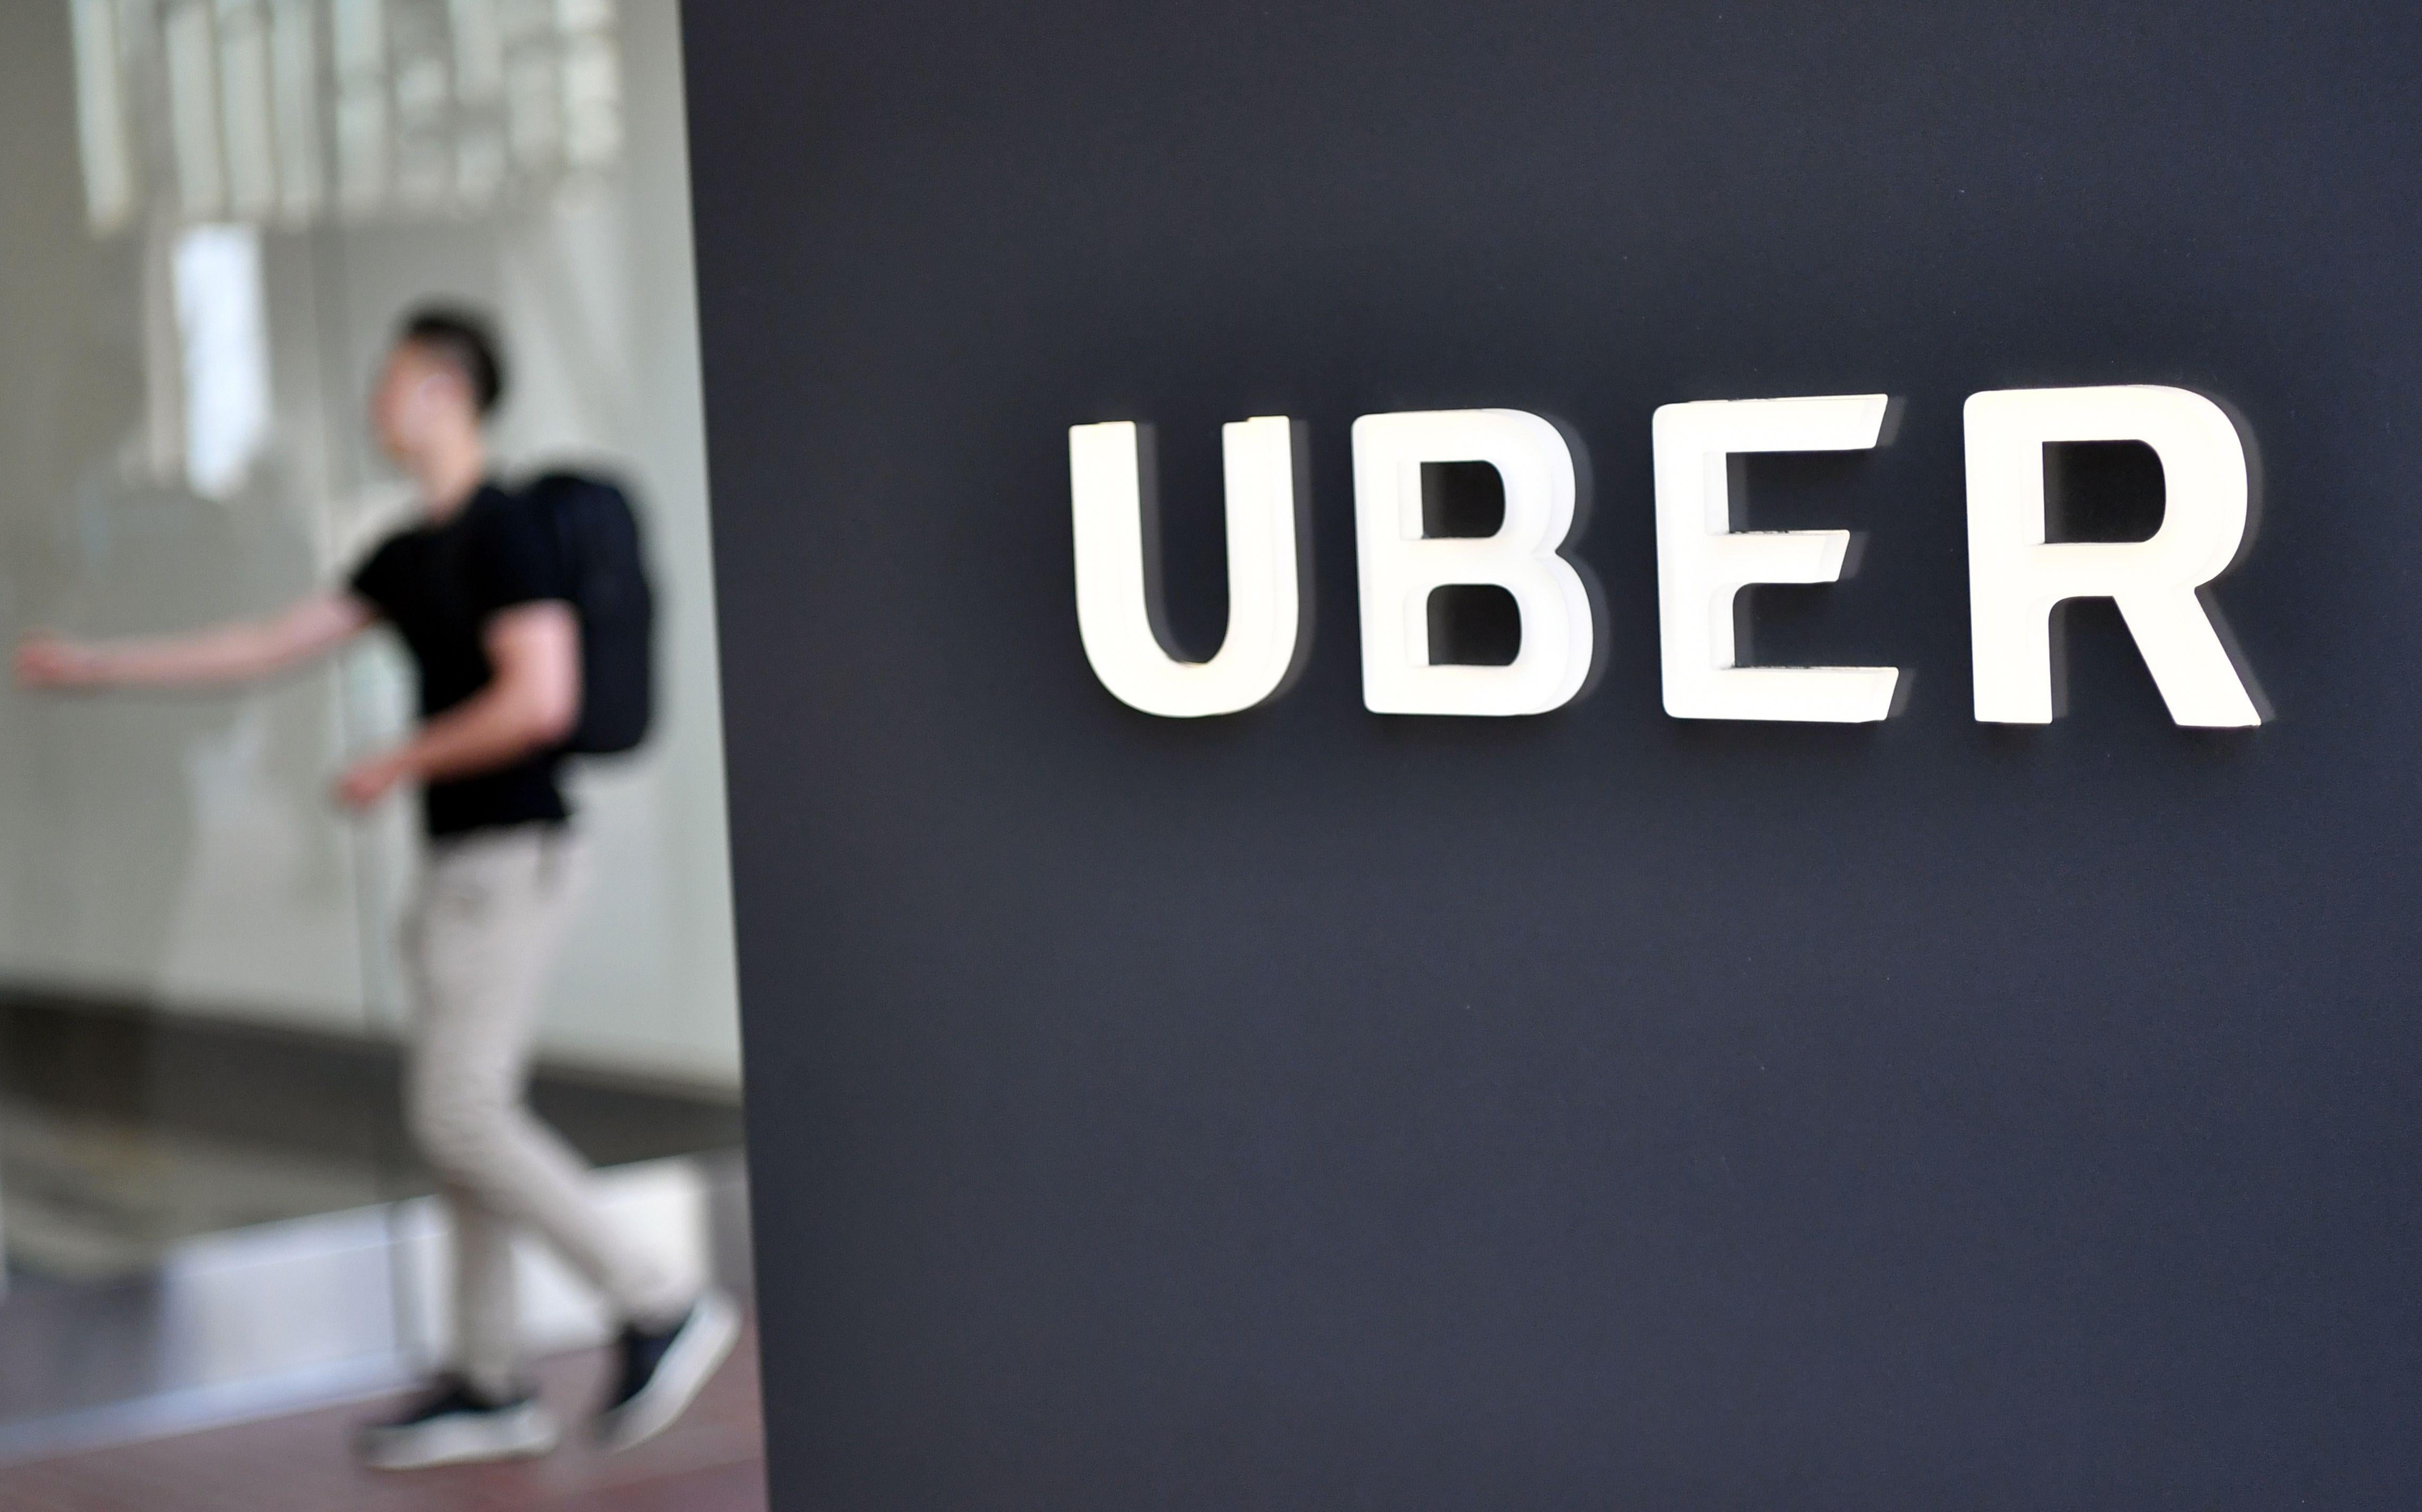 A man walks into the Uber Corporate Headquarters building in San Francisco, California on February 05, 2018.          The billion-dollar trial pitting Alphabet-owned autonomous driving unit Waymo against Uber started in what could be a blockbuster case between two technology giants over alleged theft of trade secrets. The San Francisco courtroom battle will take place as Waymo and Uber race to perfect self-driving cars that people could summon for rides as desired in a turn away from car ownership.          / AFP PHOTO / JOSH EDELSON        (Photo credit should read JOSH EDELSON/AFP/Getty Images)